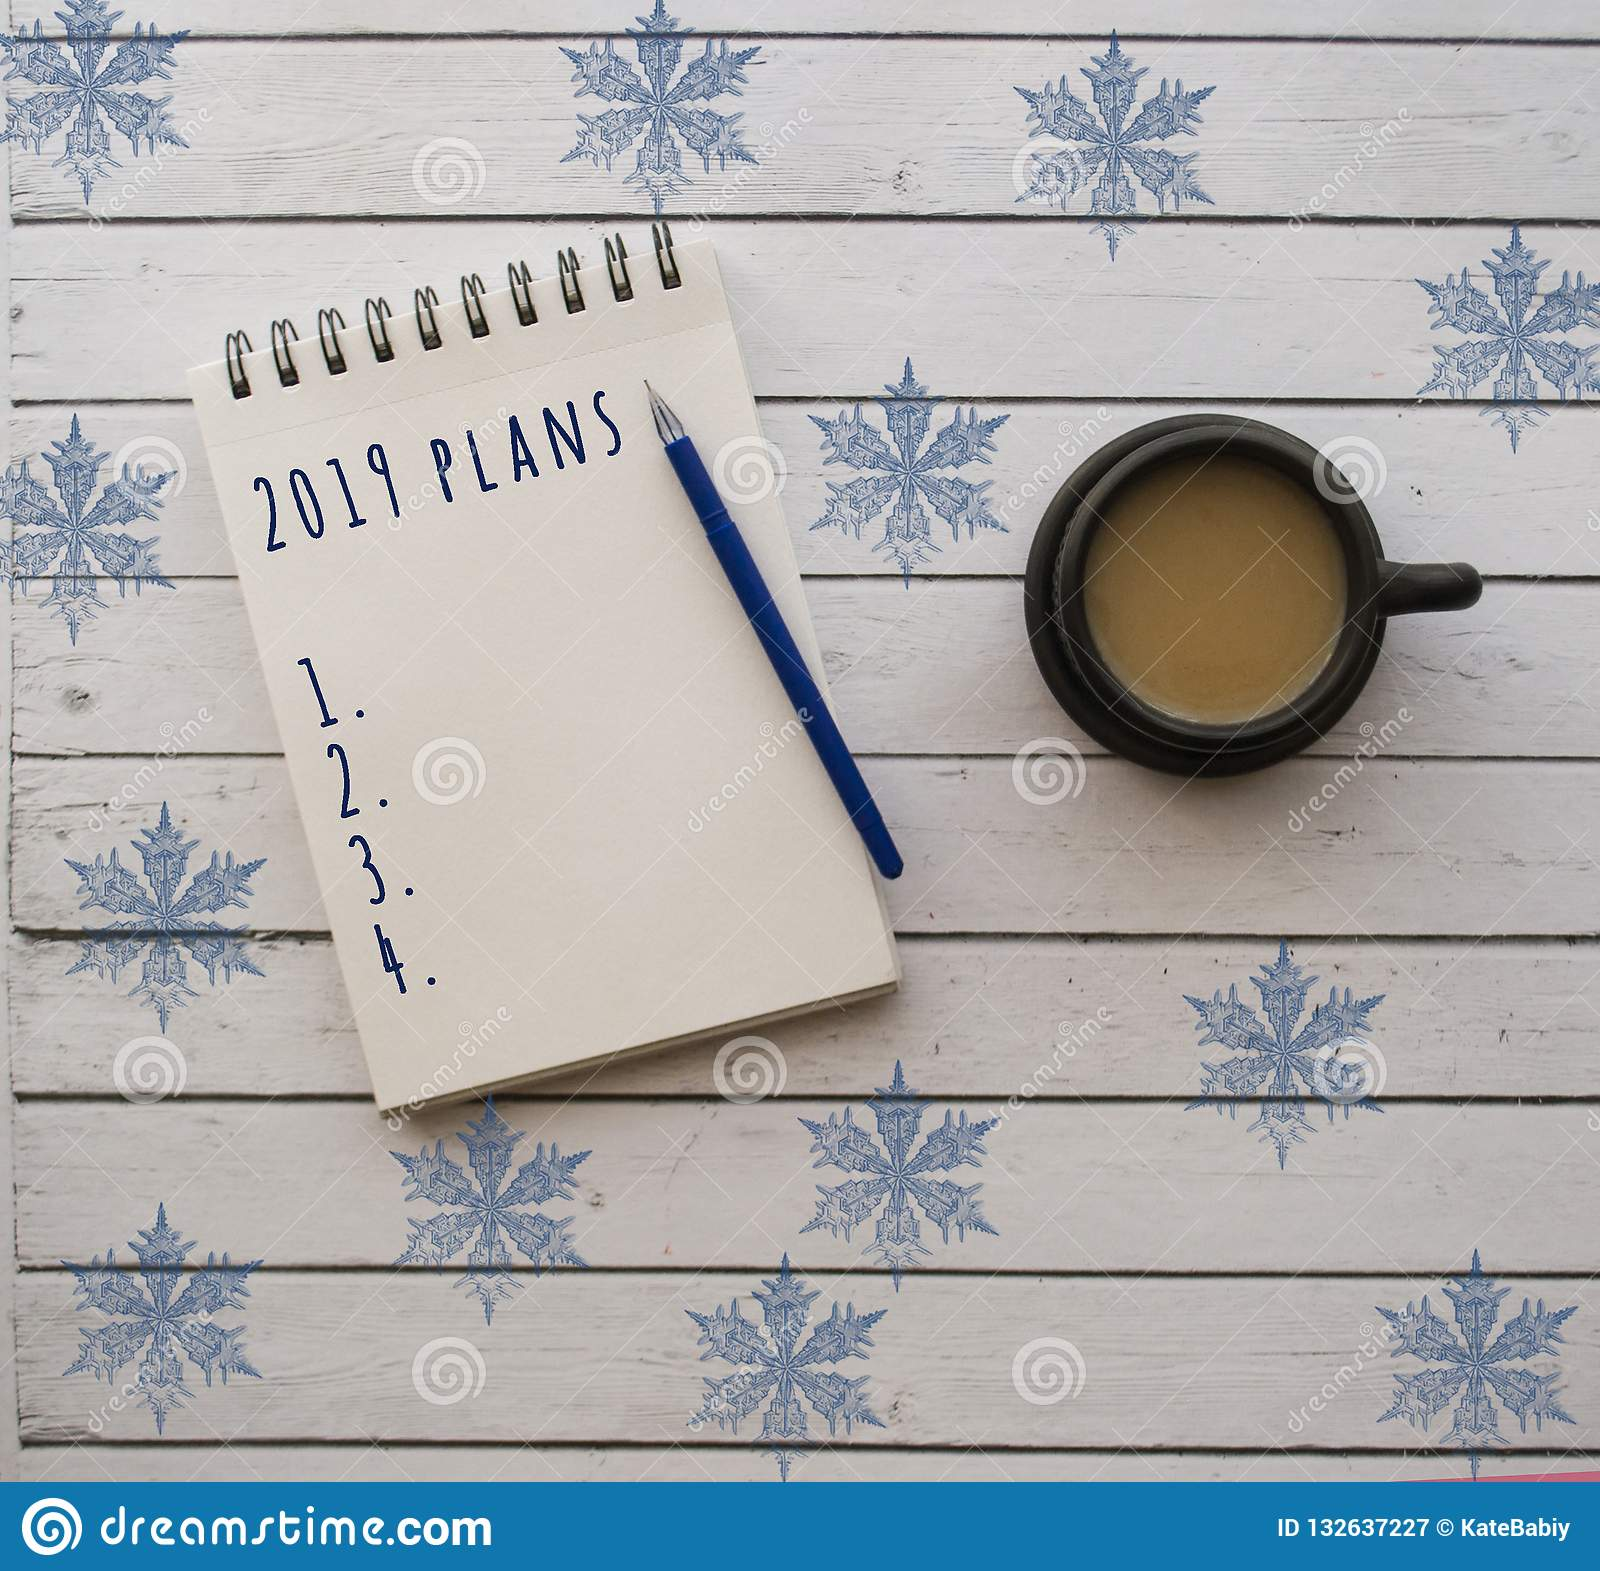 A cup of coffee and notepad on white wooden table.